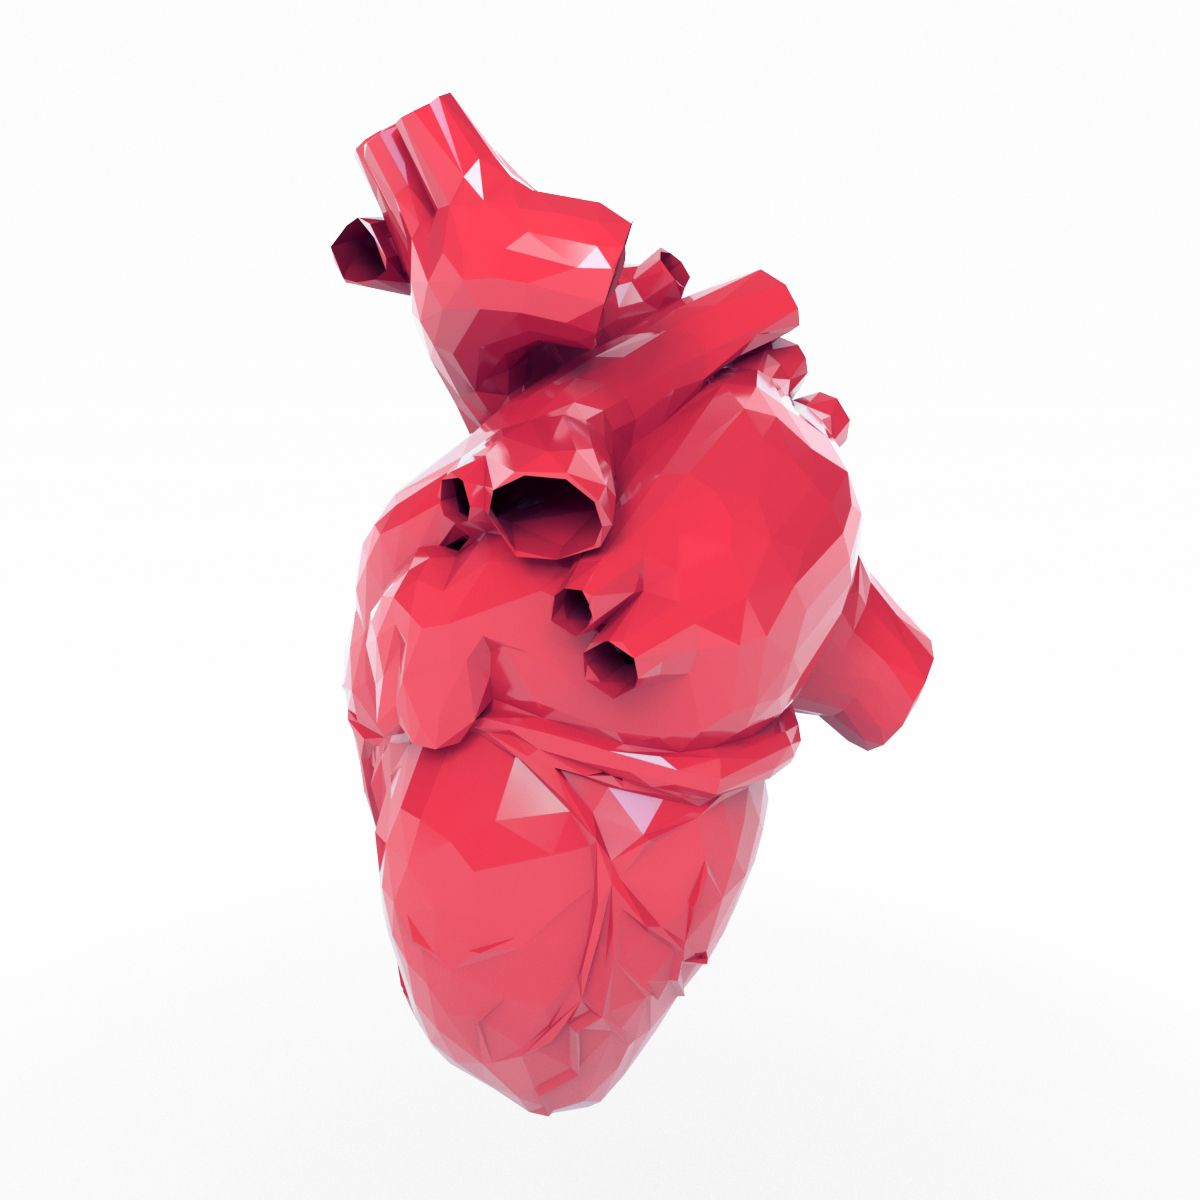 Low Poly Heart #Poly, #Heart | 3d Design Fashion | Low poly